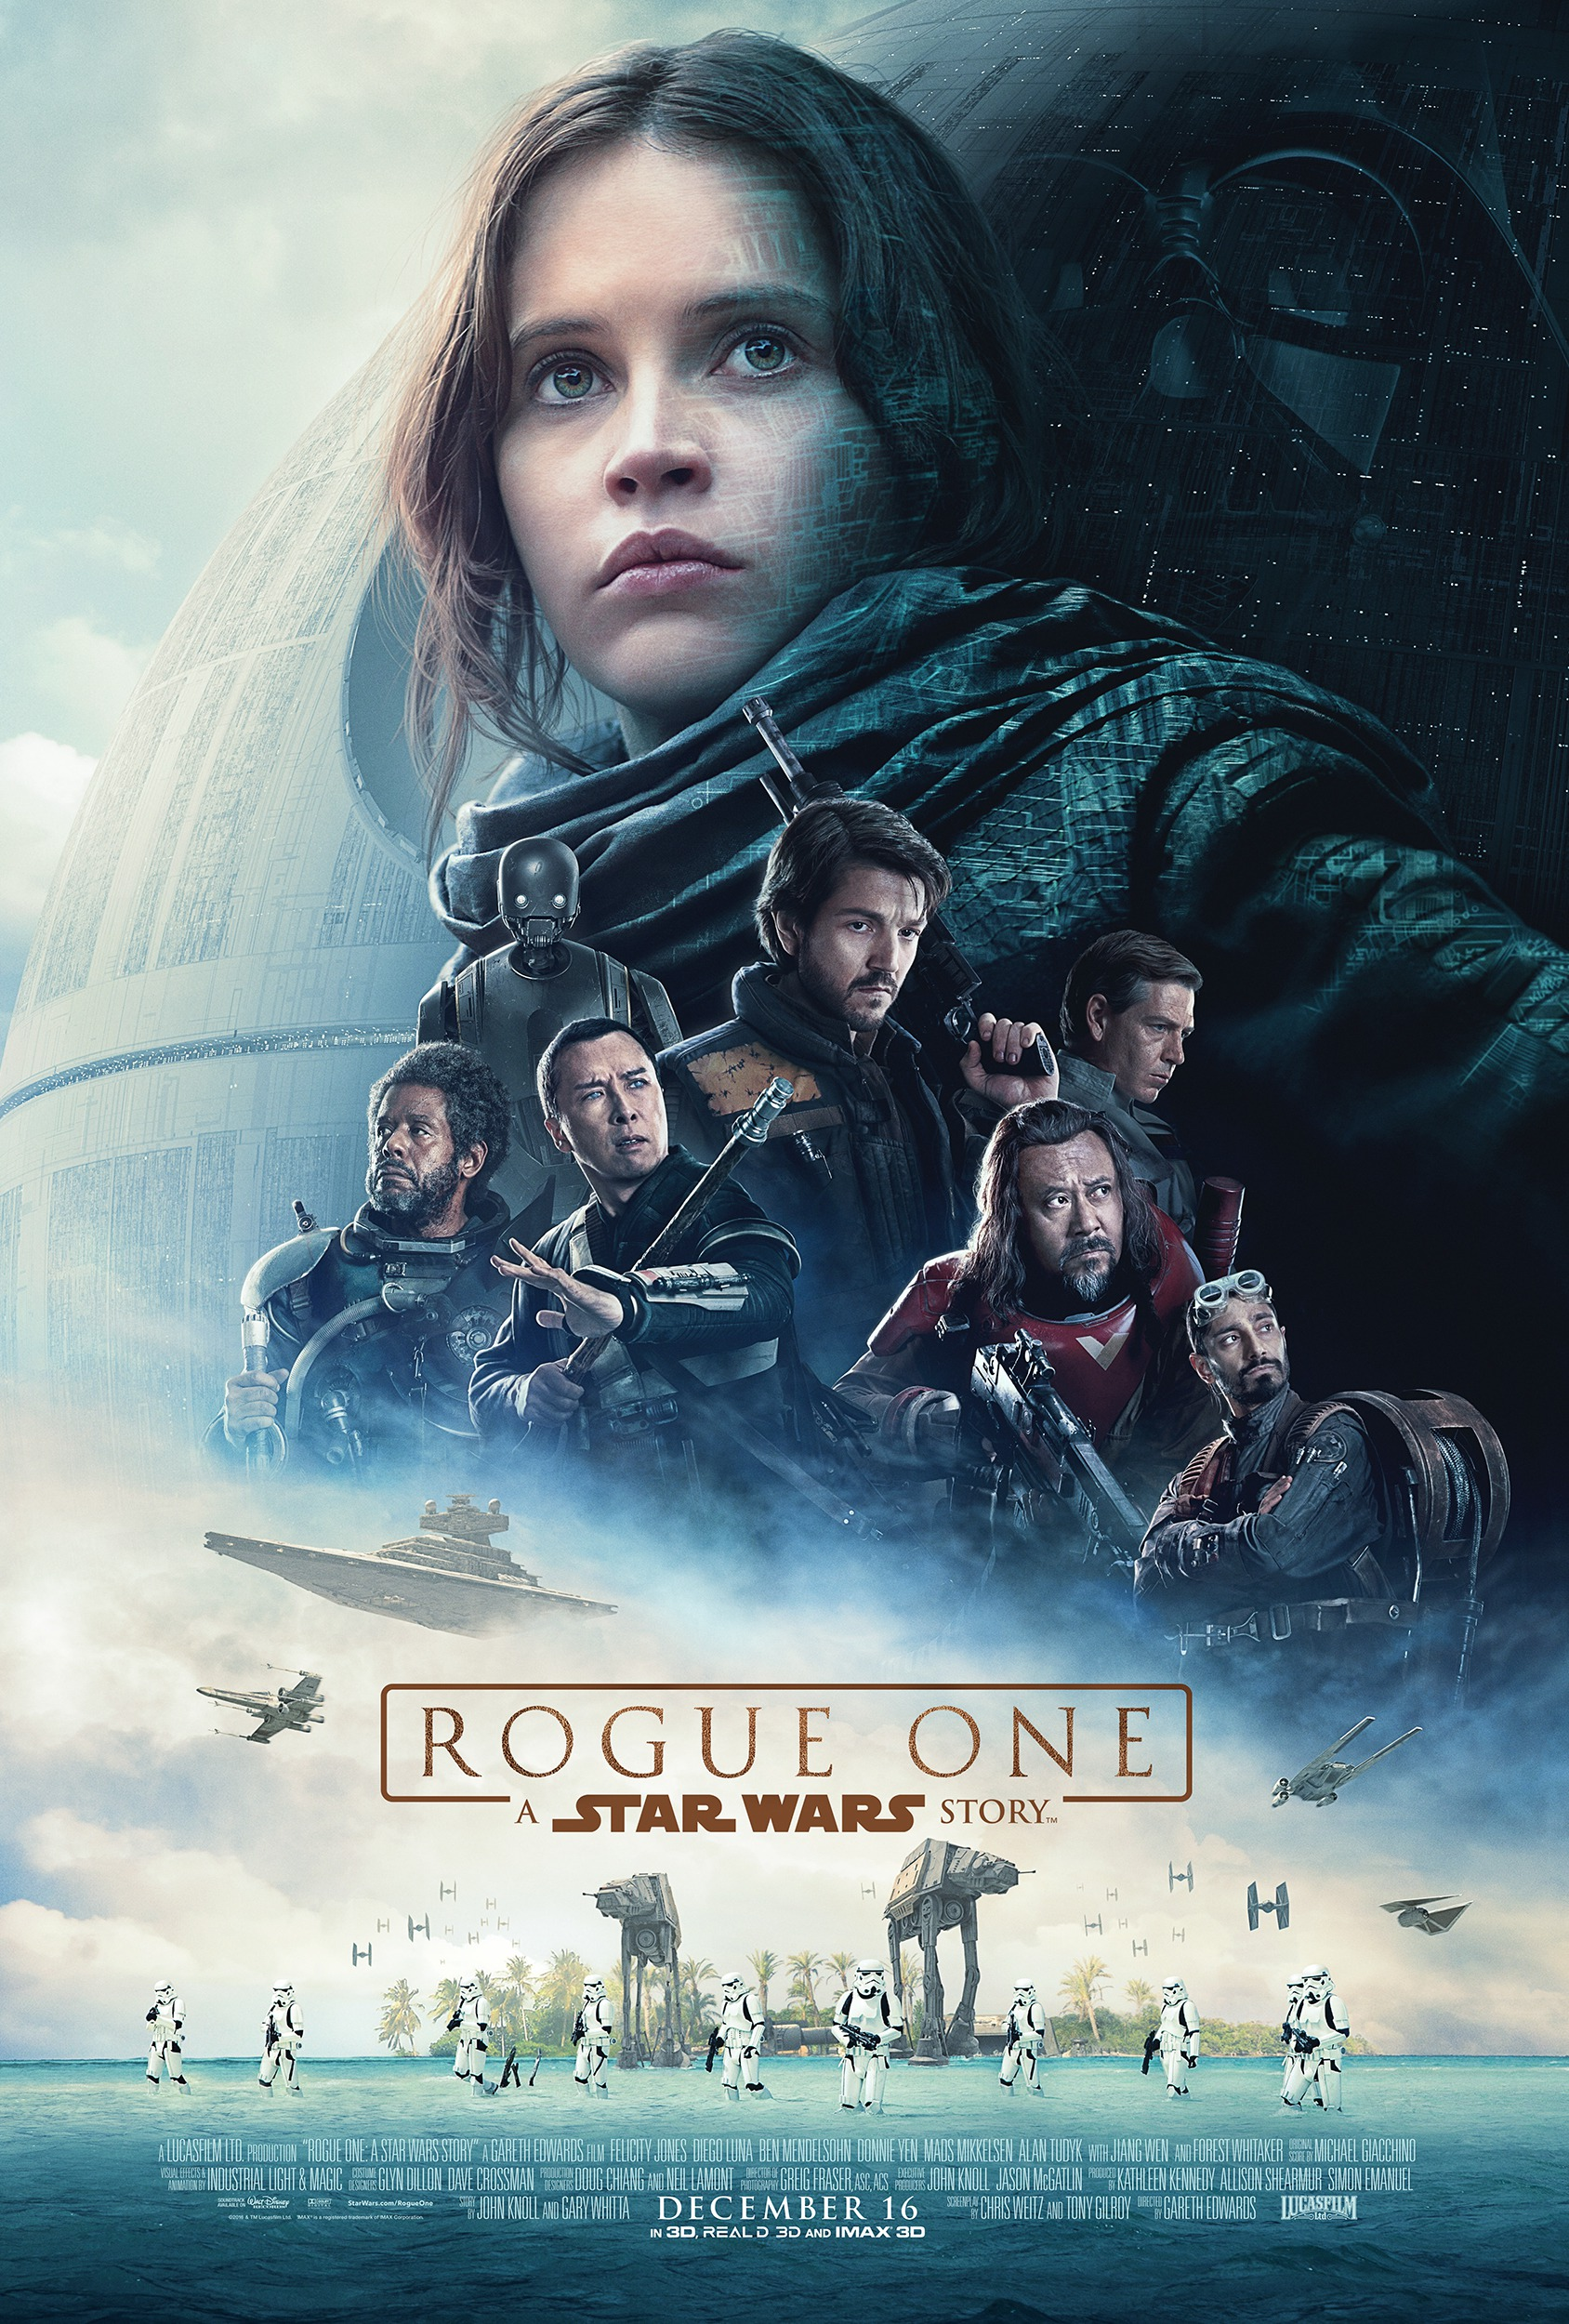 rogue-one-a-star-wars-story-xlg-13outubro2016